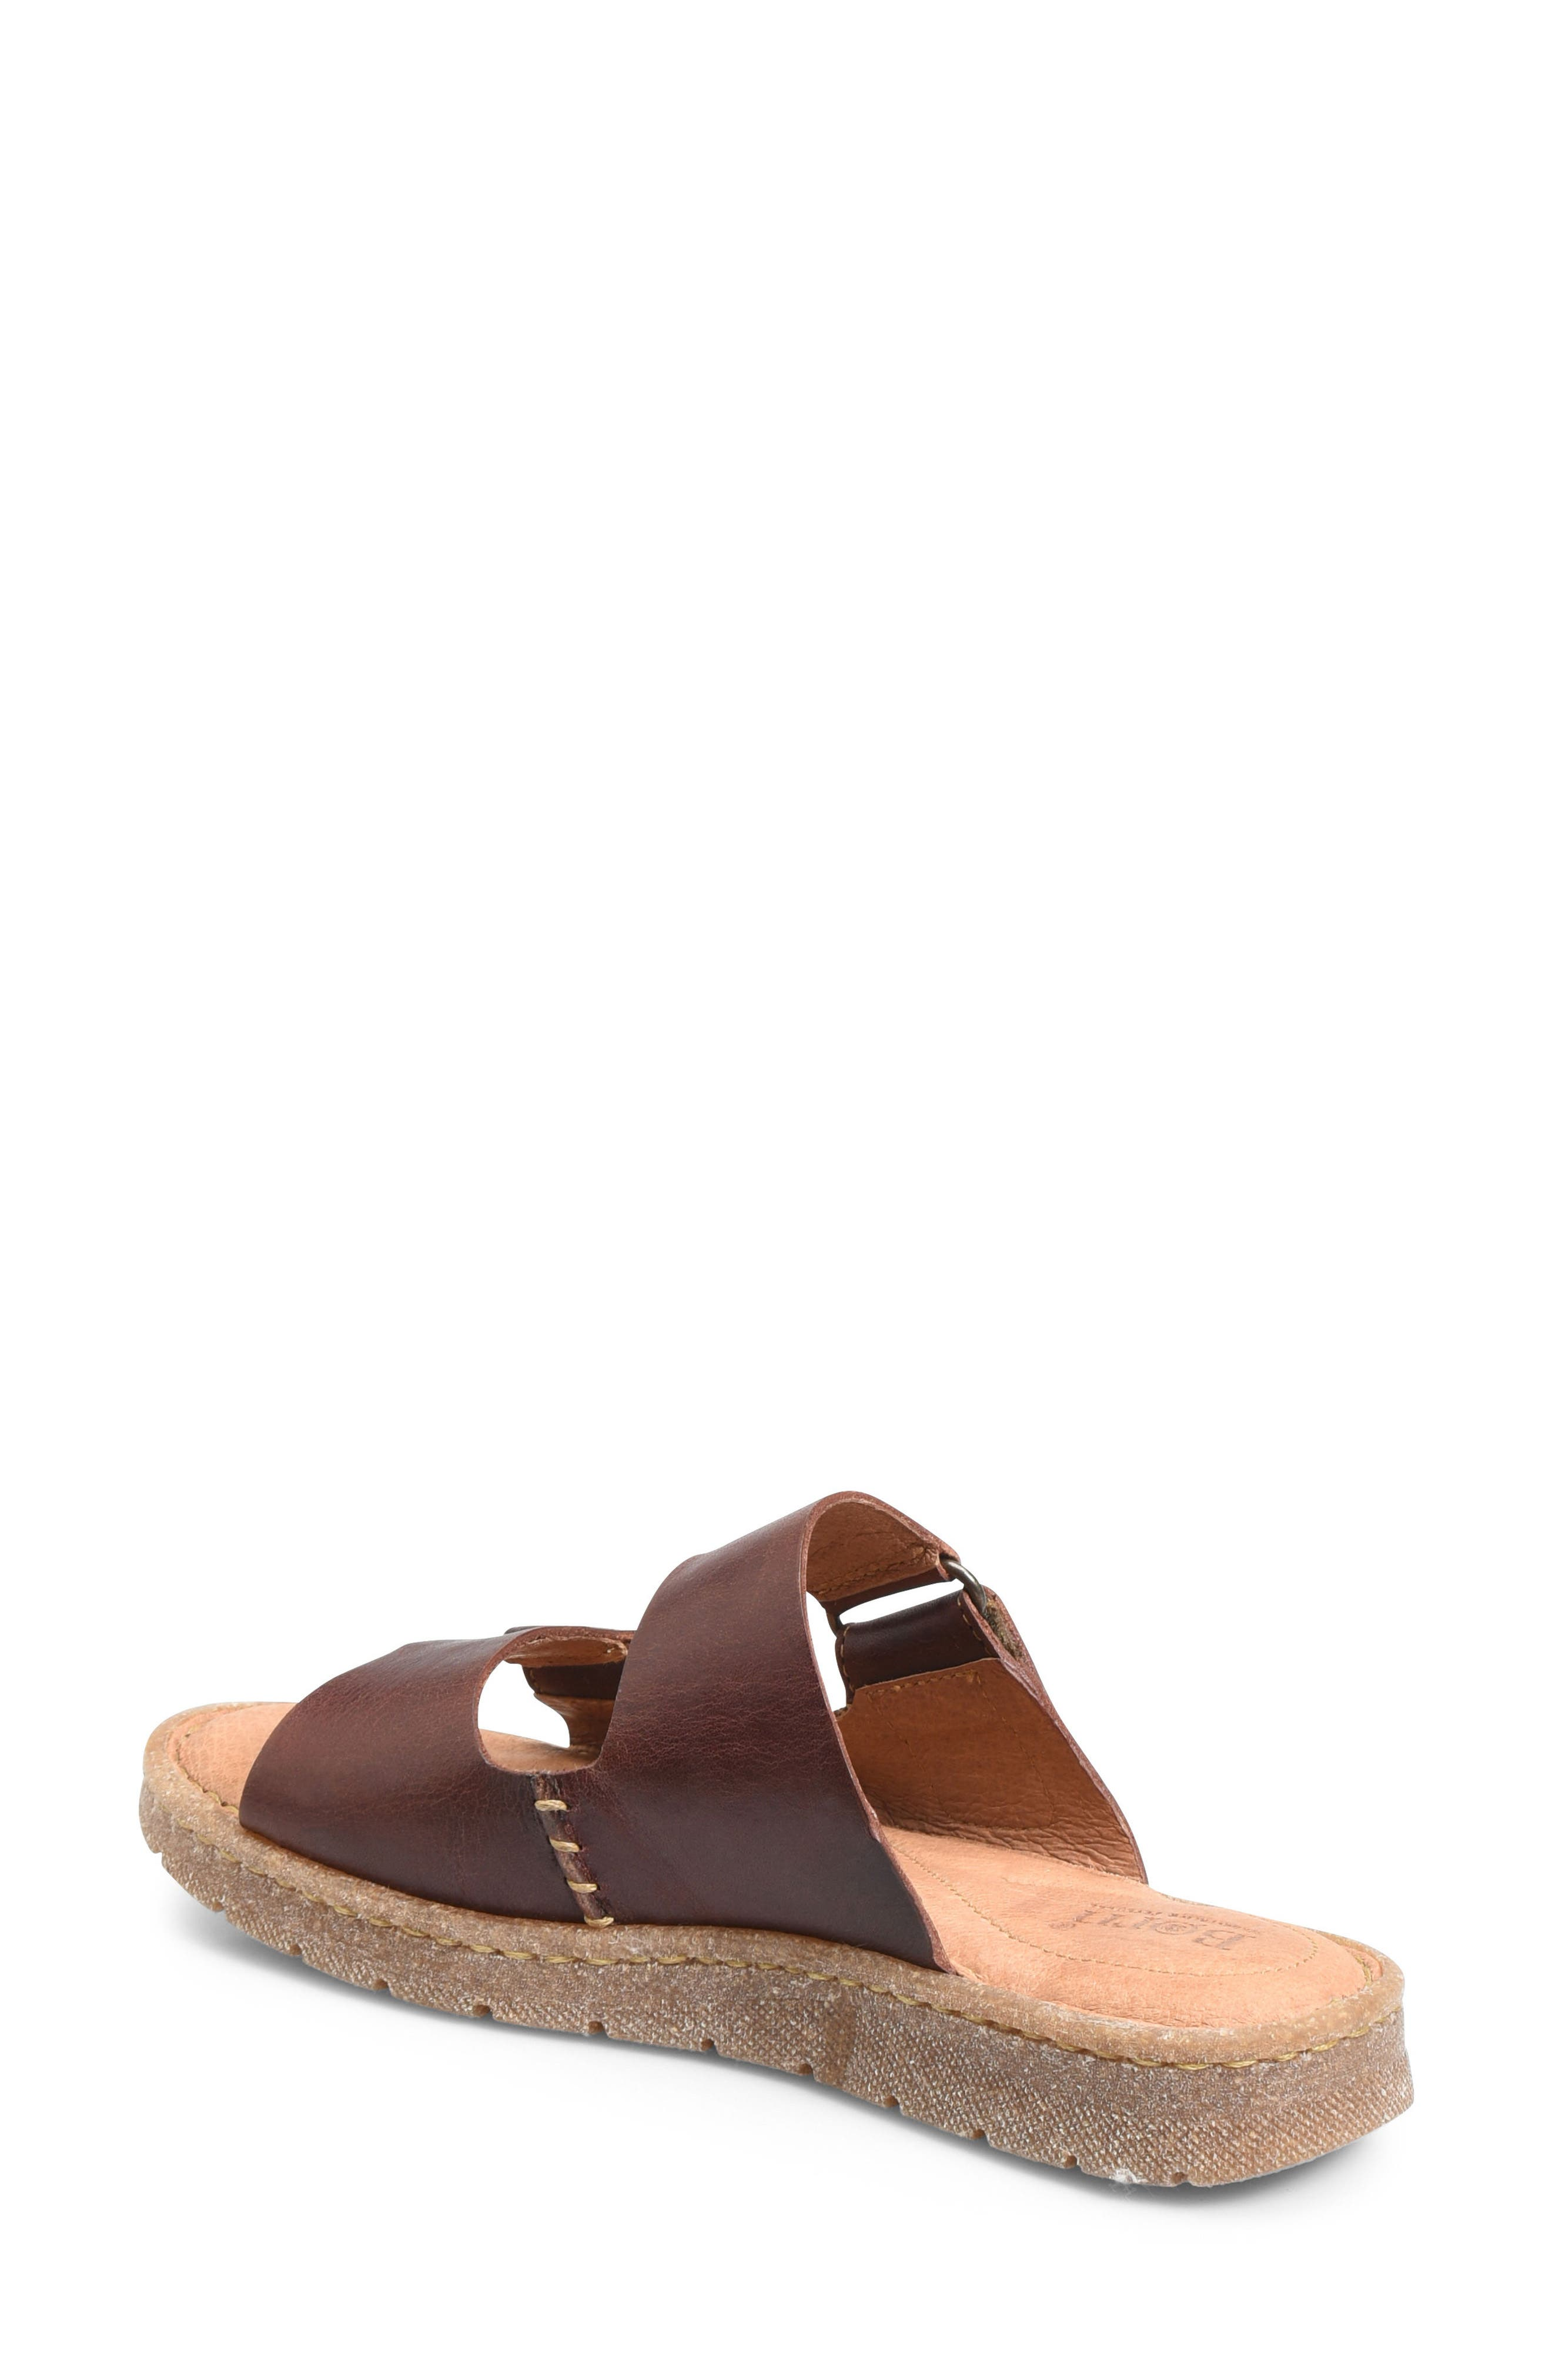 Dominica Sandal,                             Alternate thumbnail 2, color,                             Rust Leather